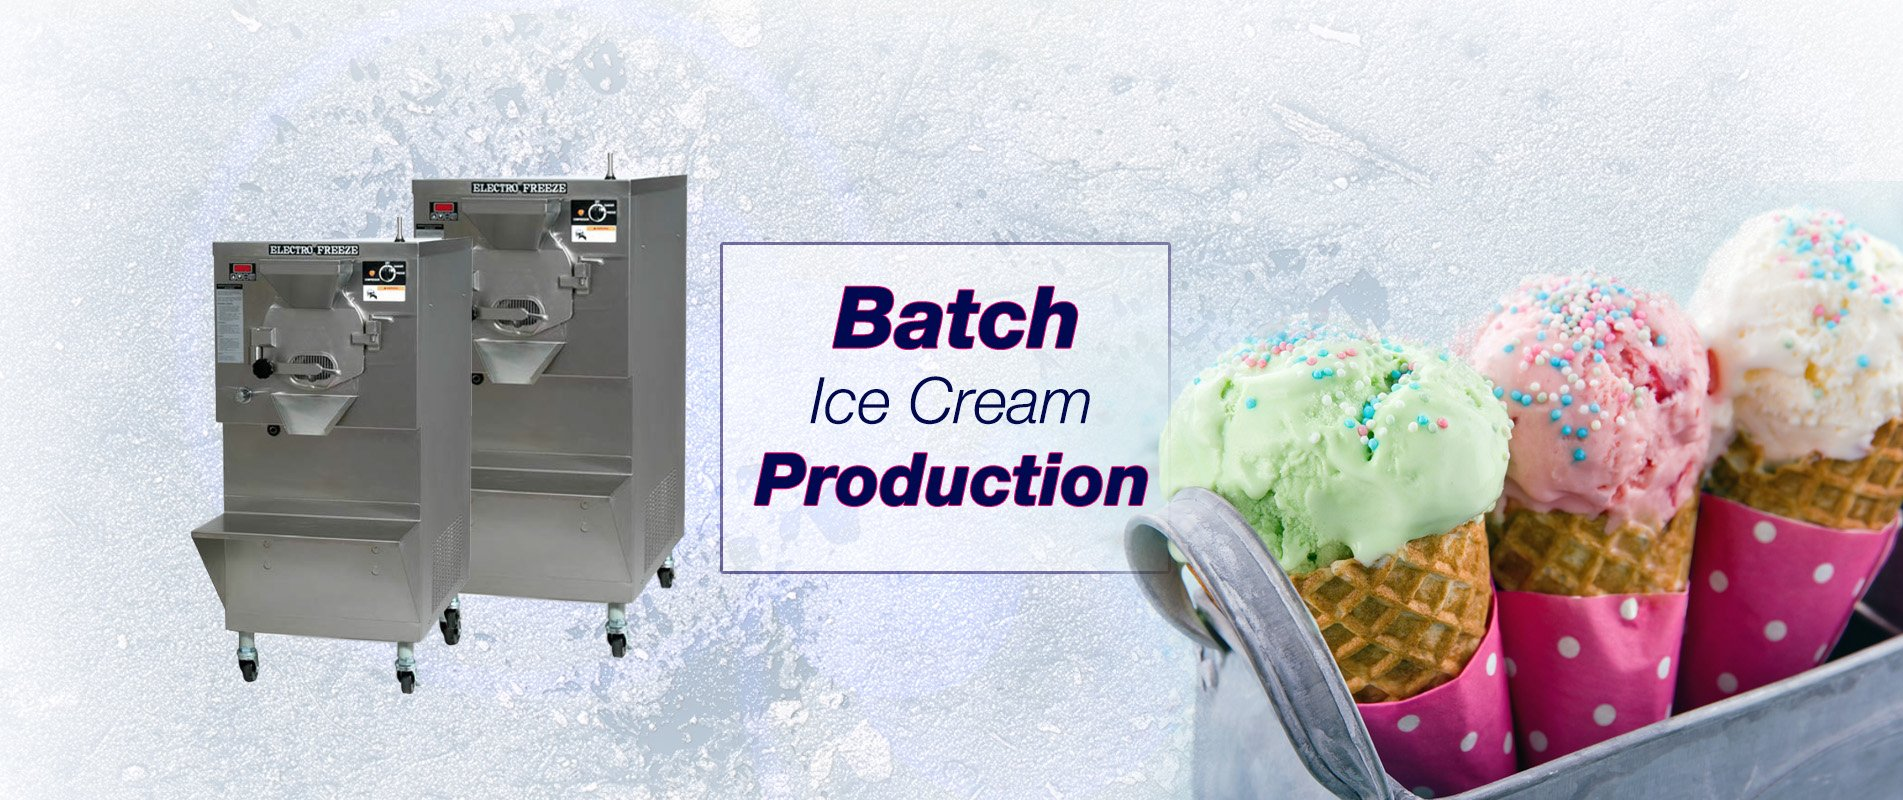 Batch Ice Cream Production